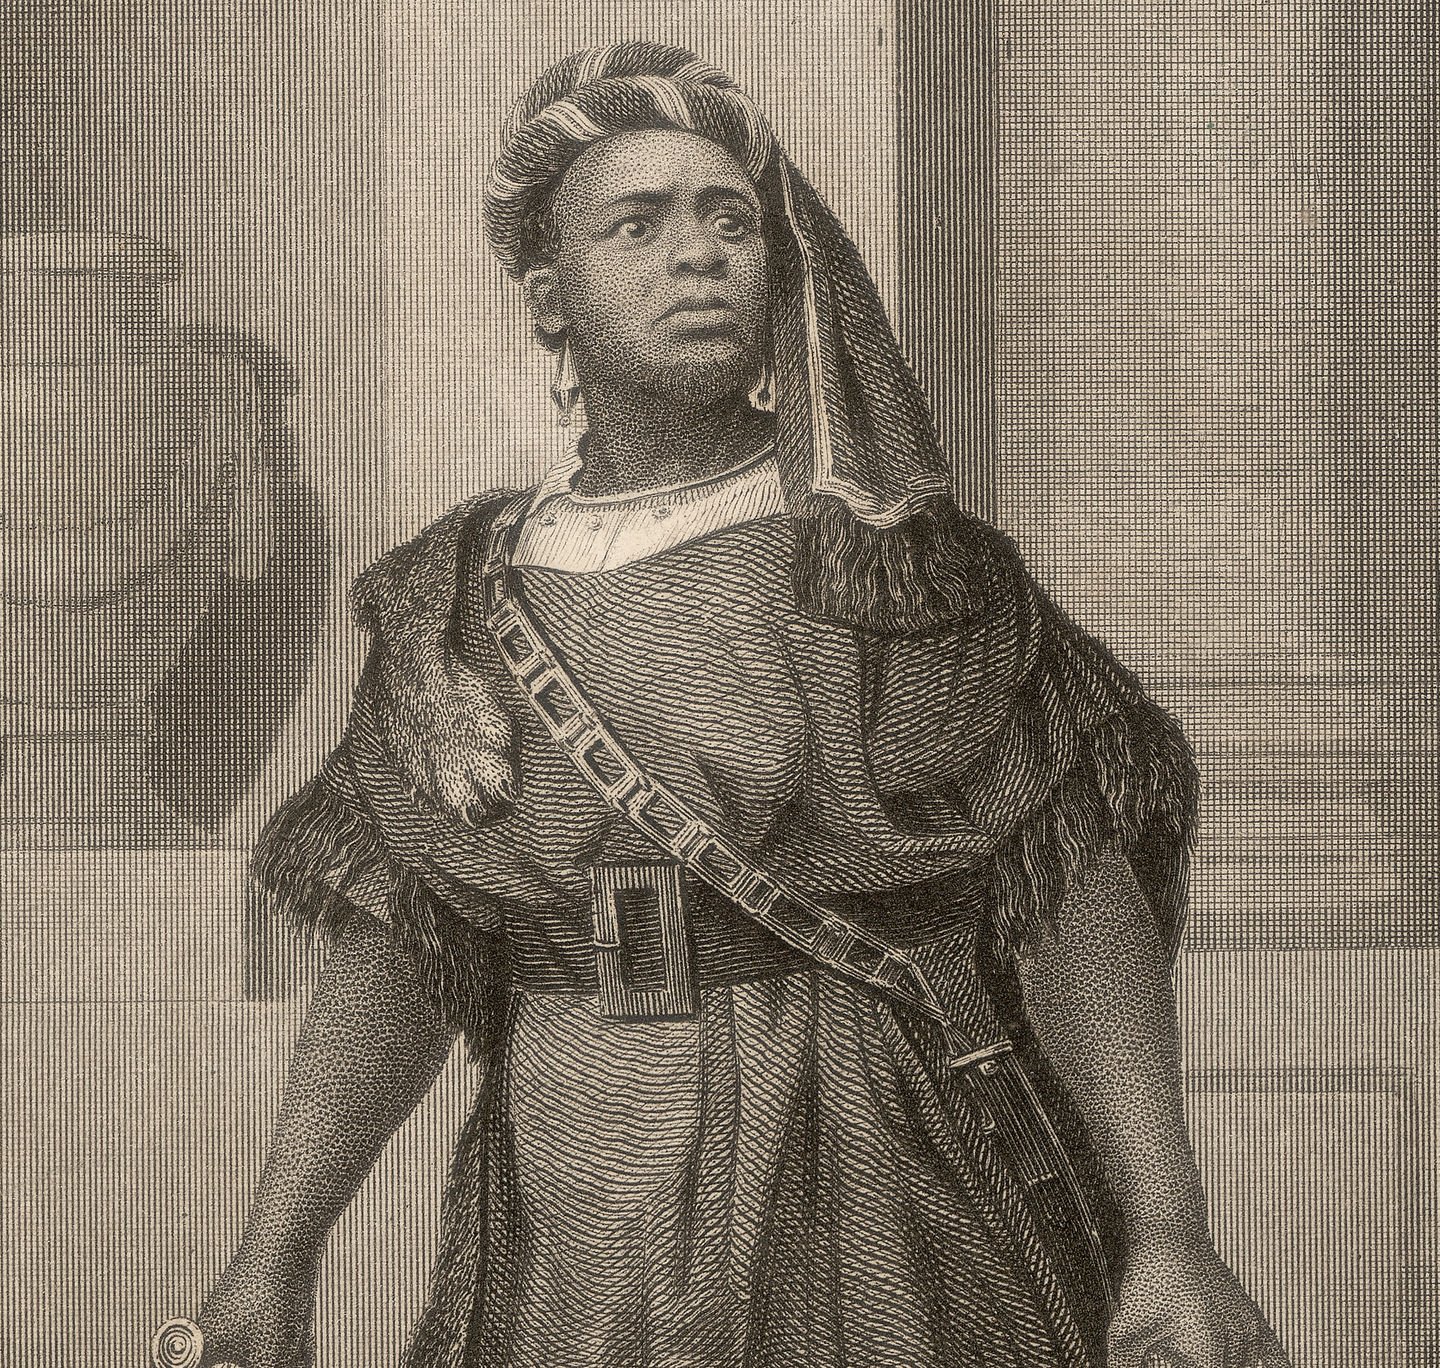 The story of Ira Aldridge